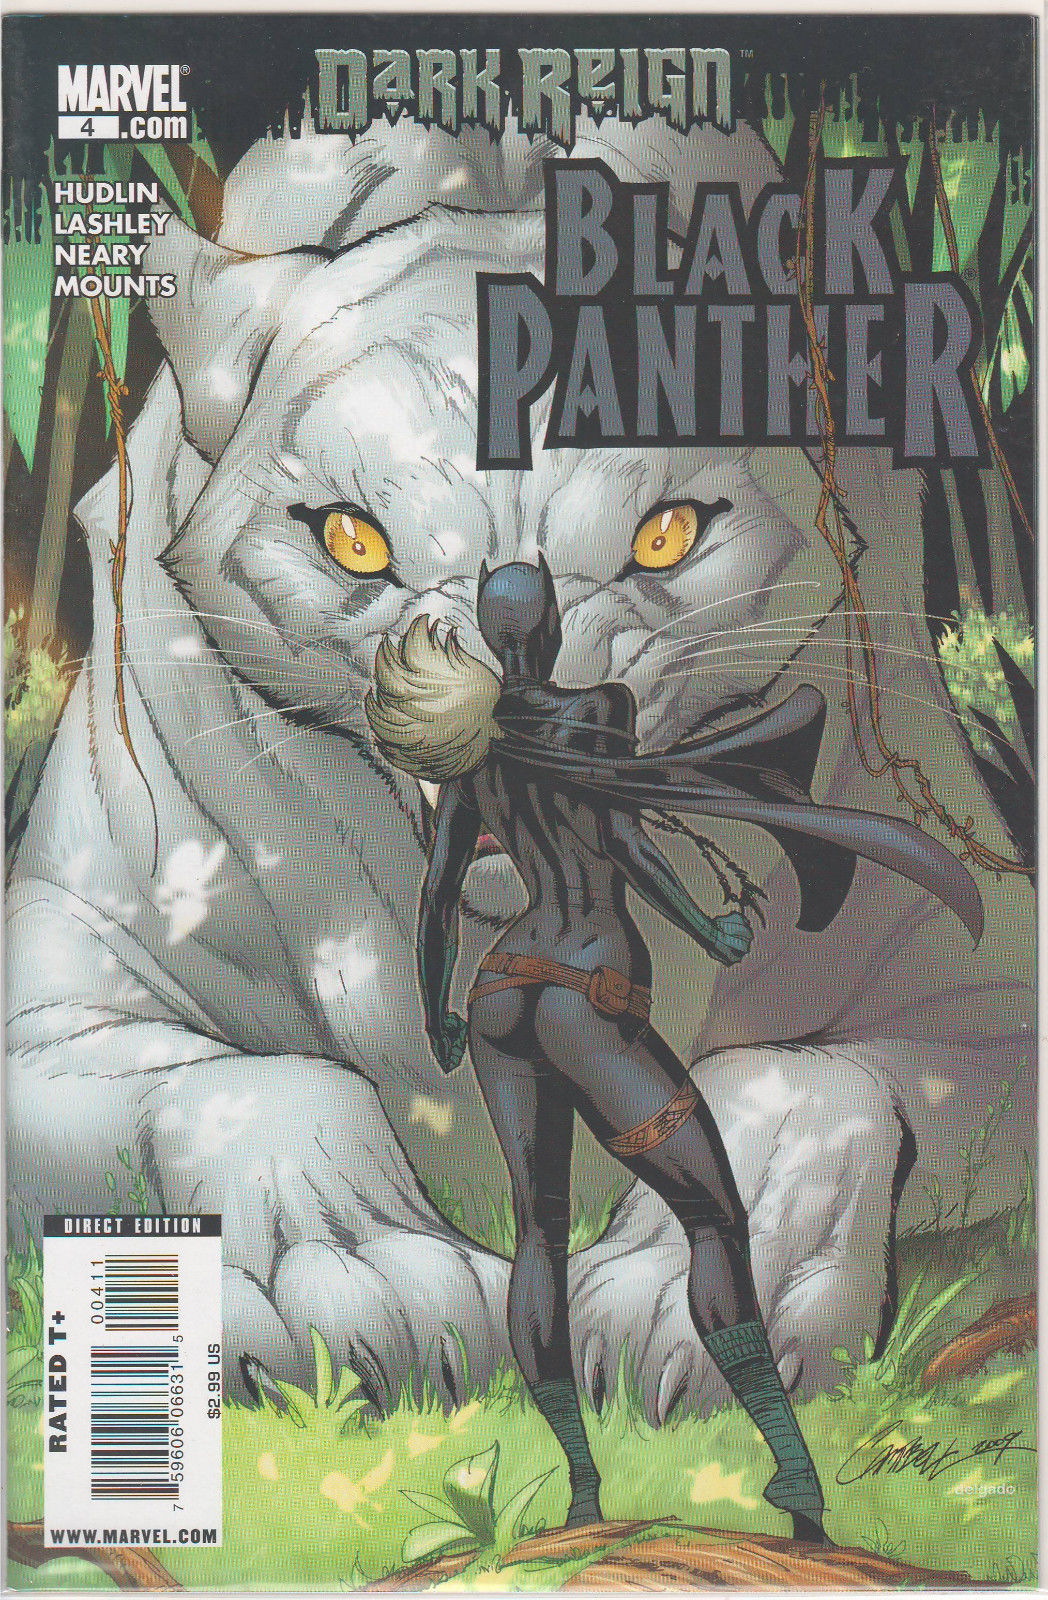 Dark Reign: Black Panther #4 - J. Scott Campbell Marvel COMICS